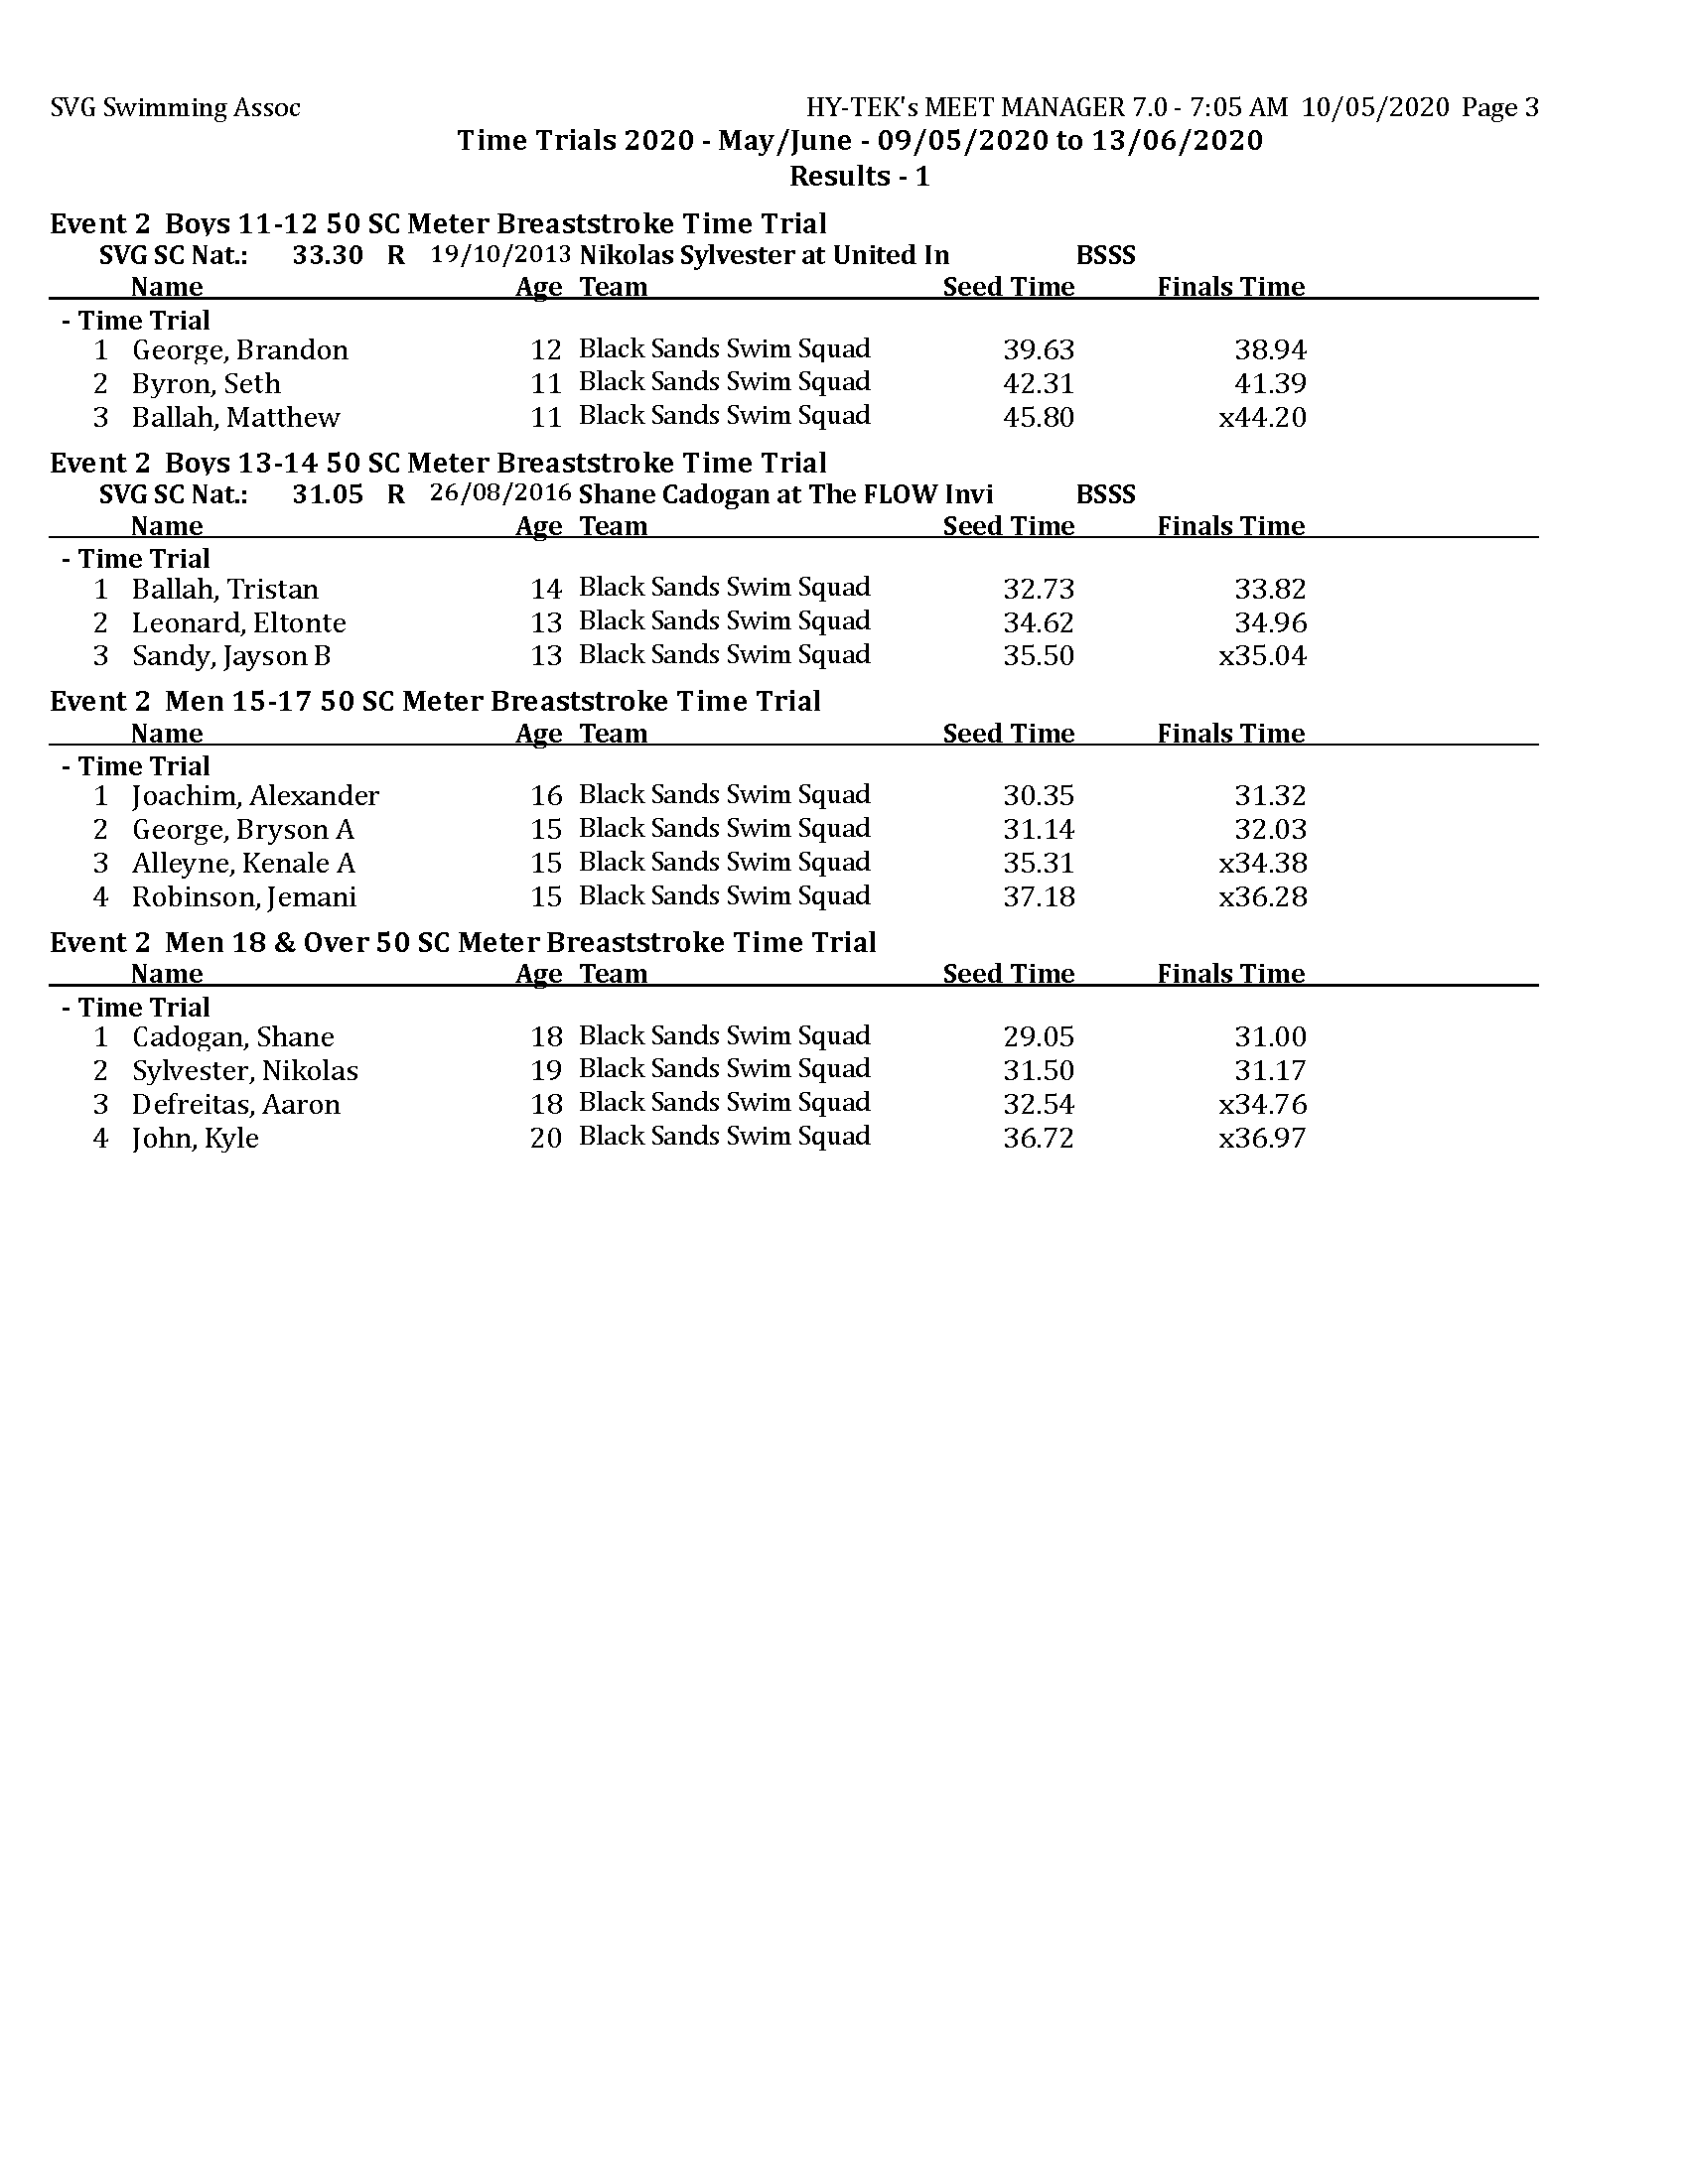 TT 2020 - May - Results day 1 MM_Page_3